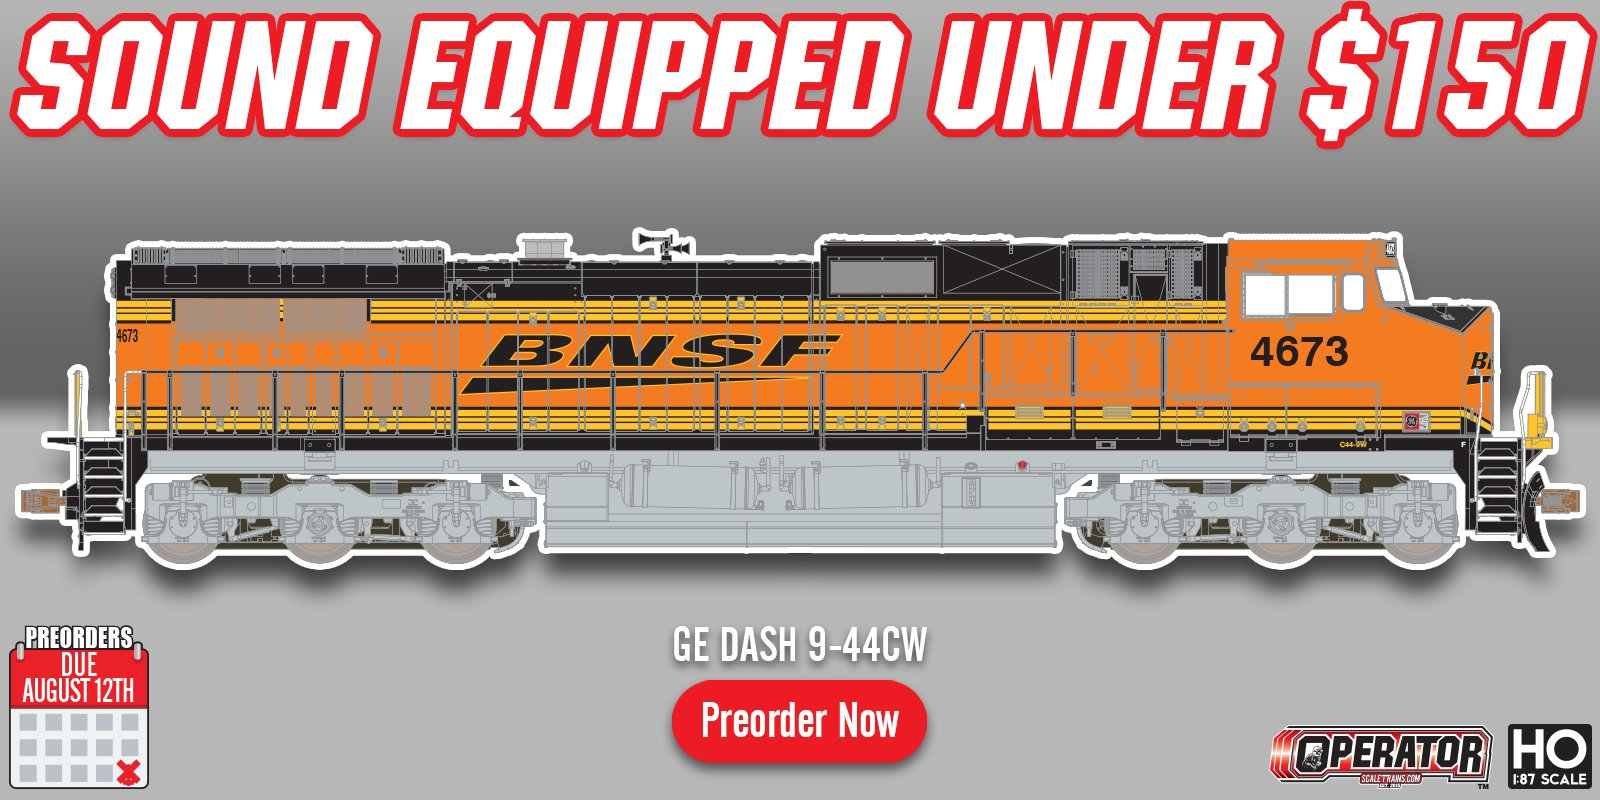 N Scale Models in Stock at ScaleTrains.com